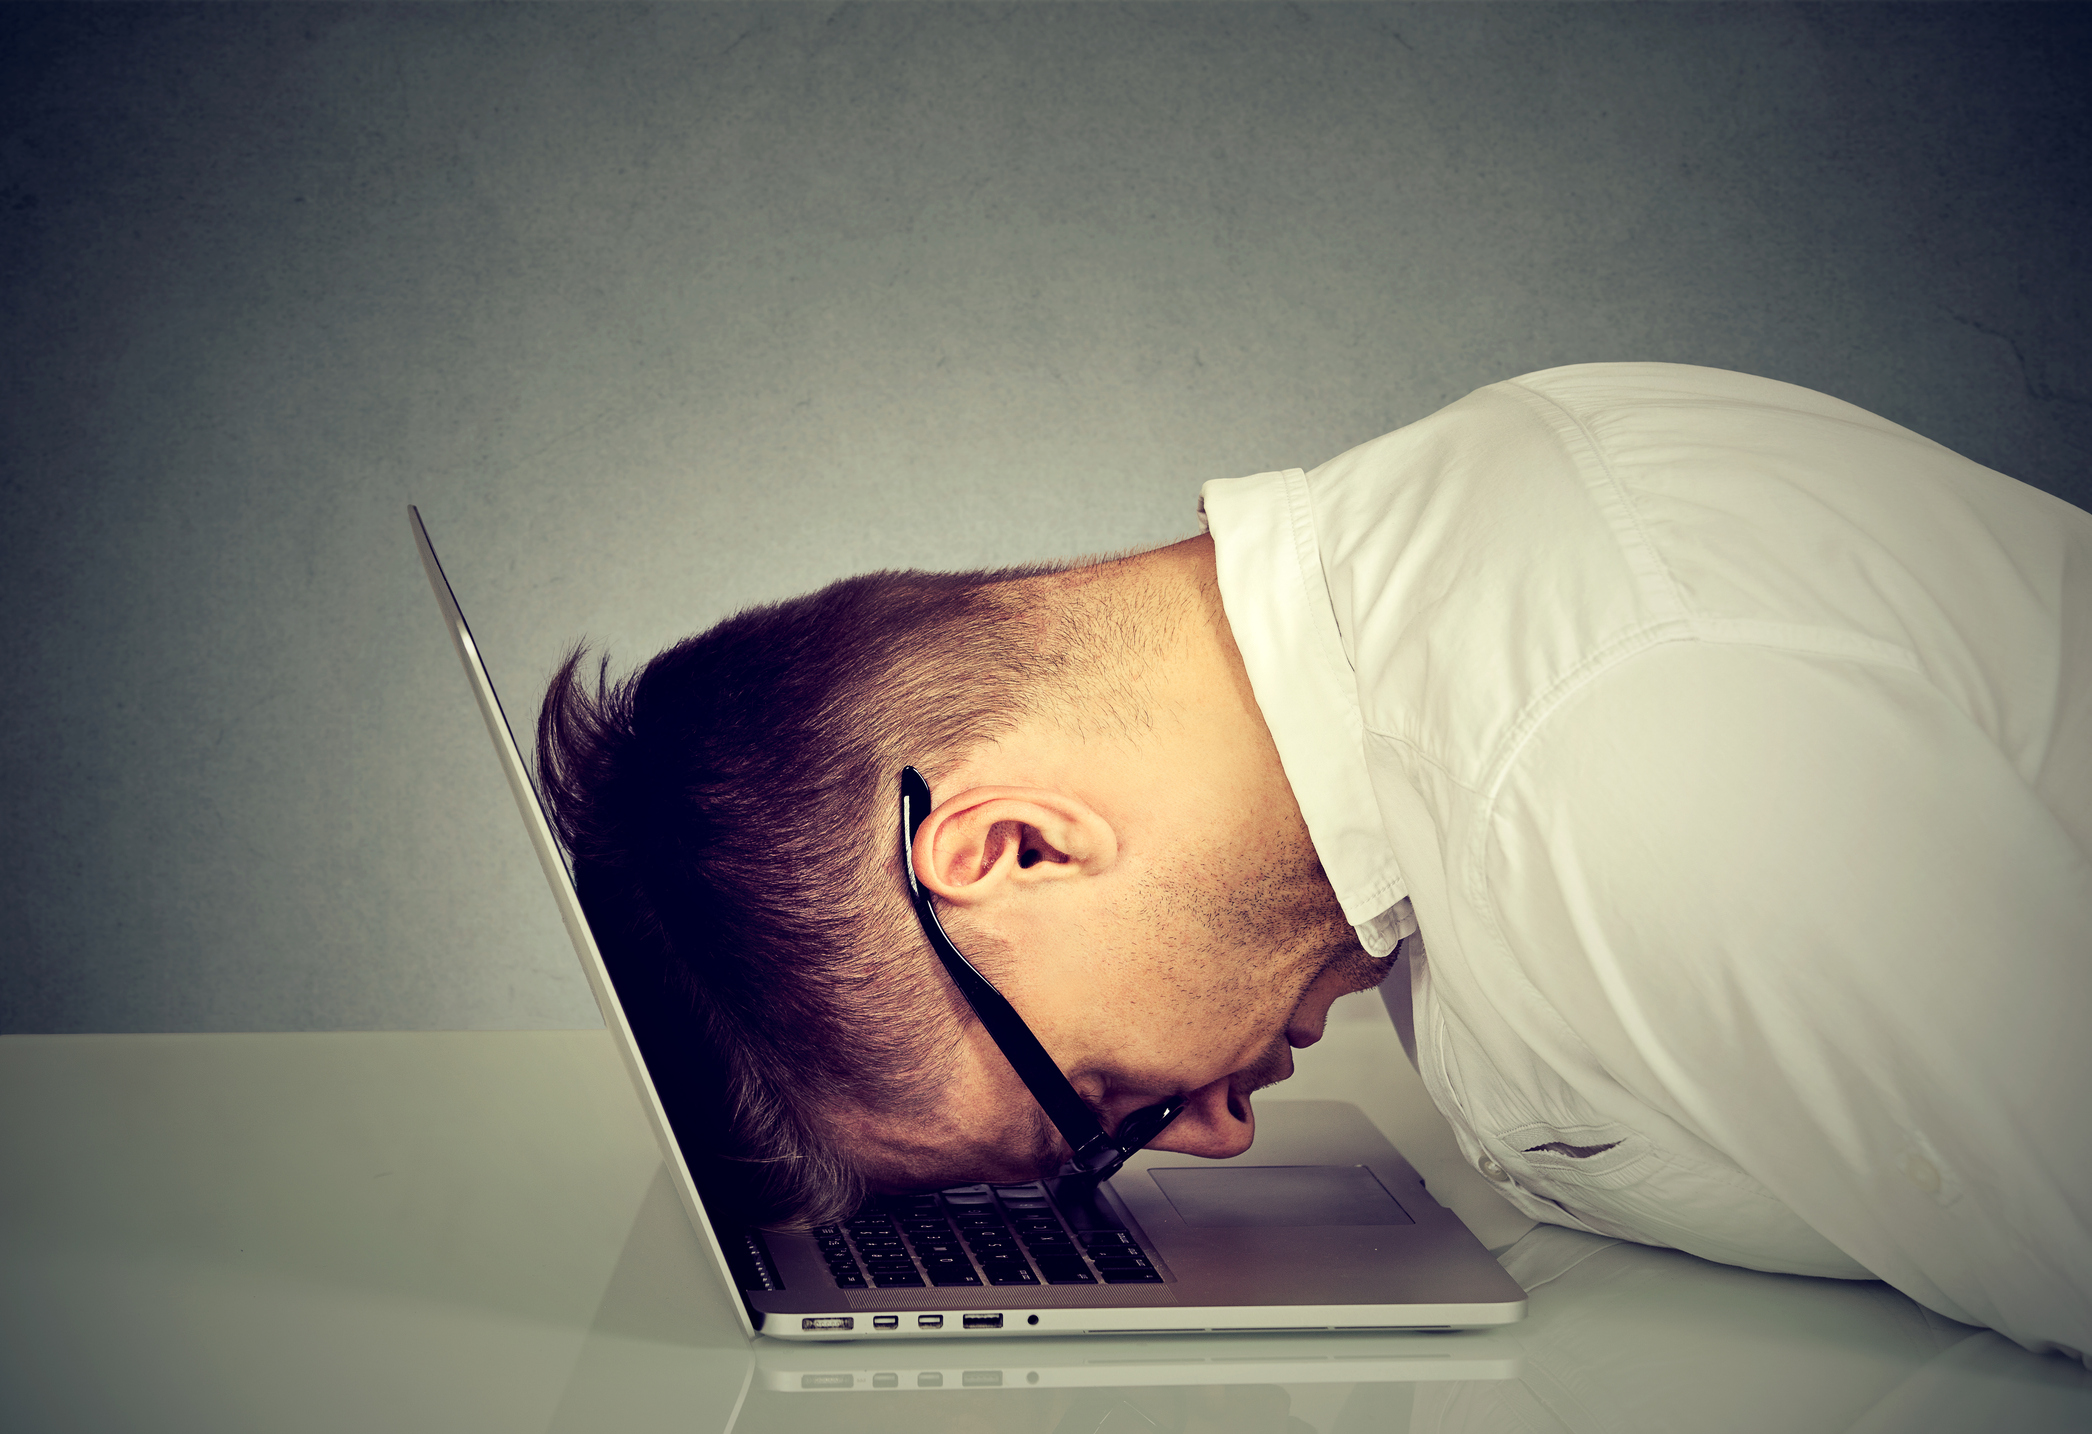 Frustrated man with head resting on a laptop